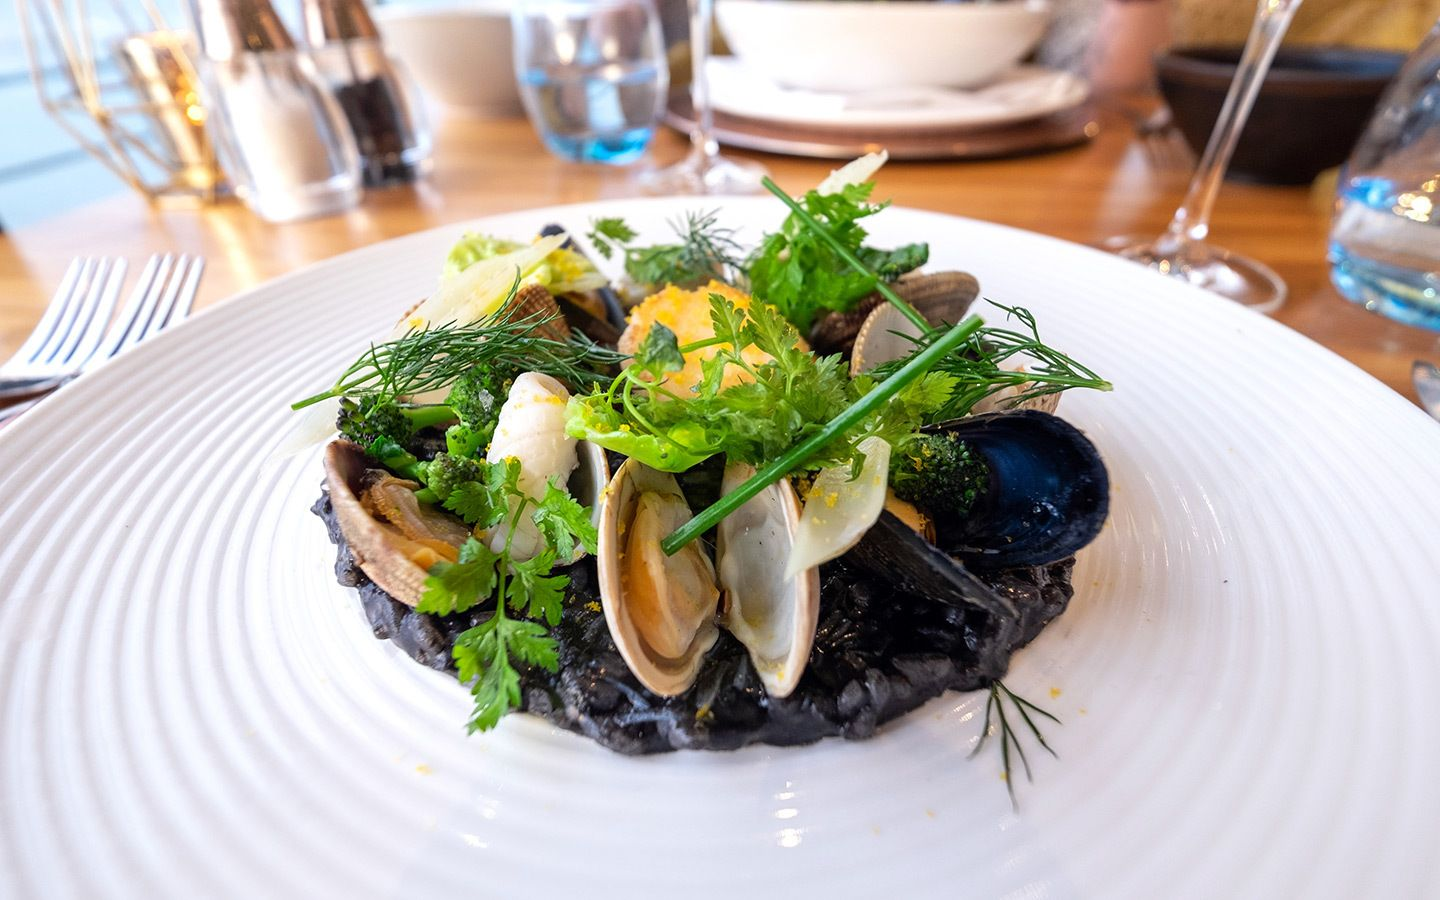 Squid ink risotto at the Seafood Ristorante